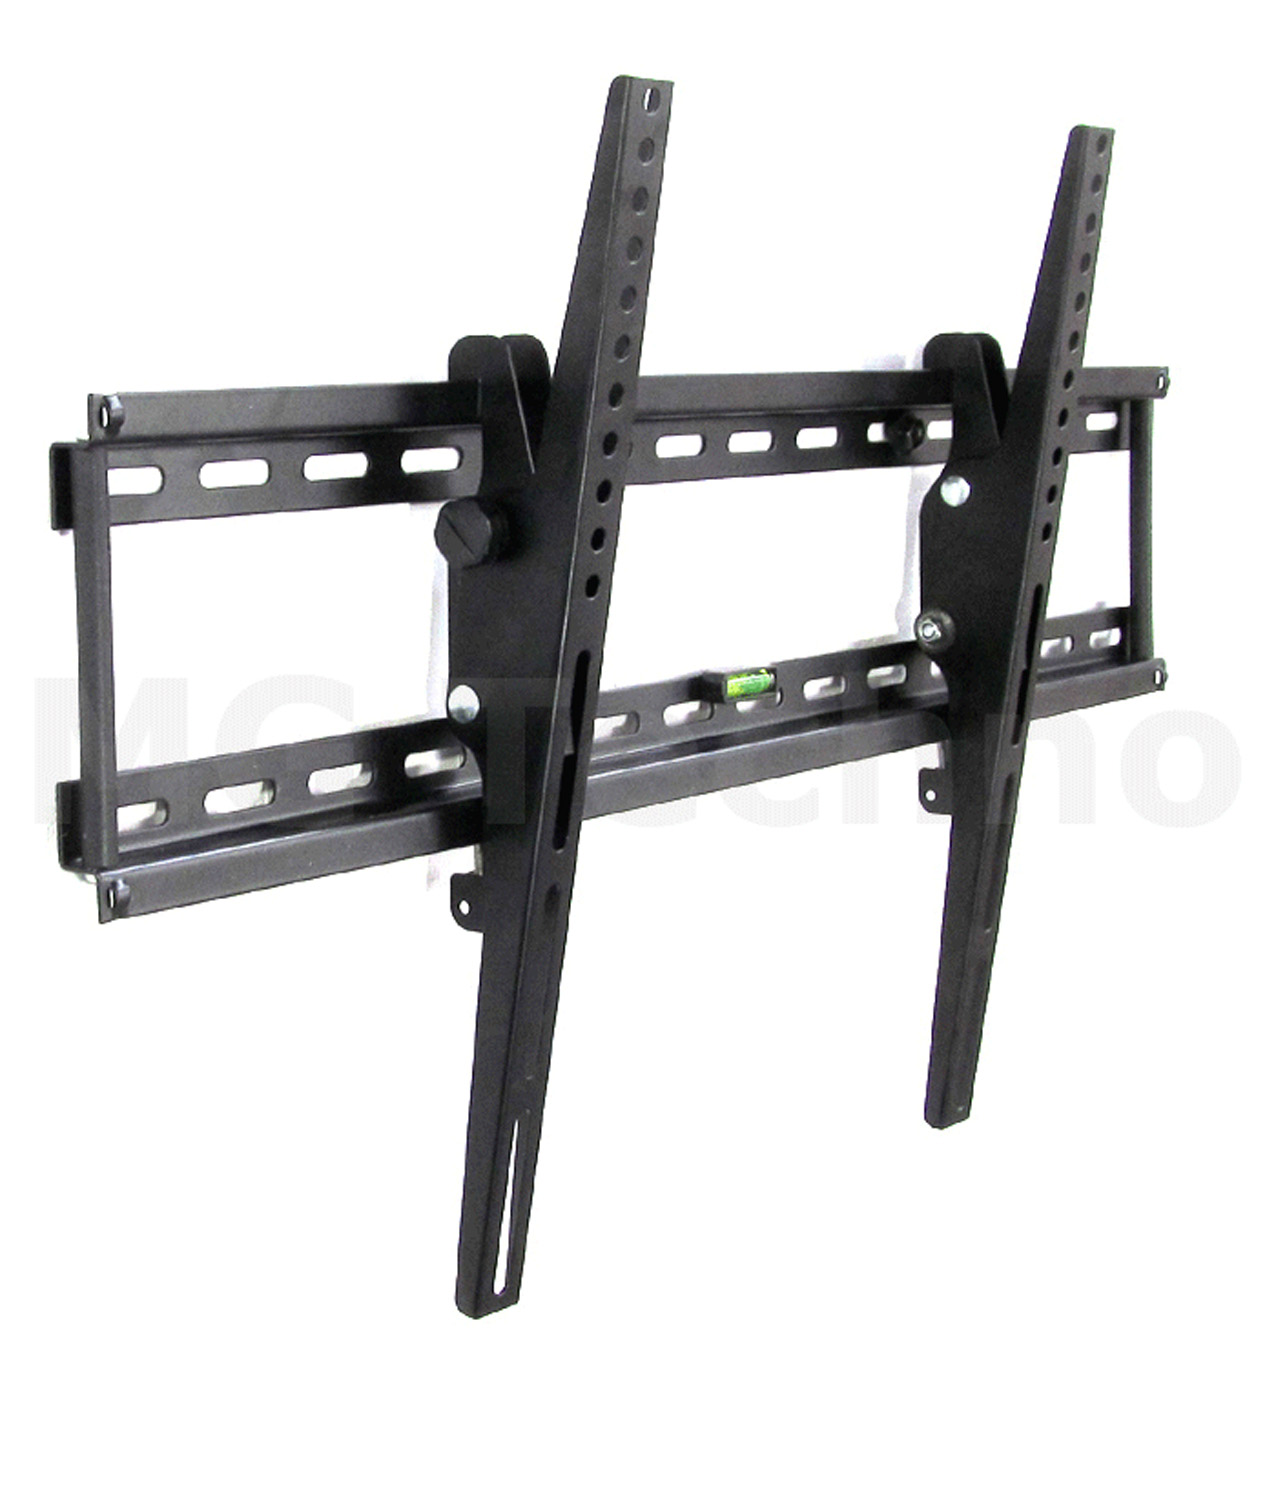 wandhalterung tv monitor bis 70 neigung 15 wandabstand 7 cm kabelkanal ebay. Black Bedroom Furniture Sets. Home Design Ideas